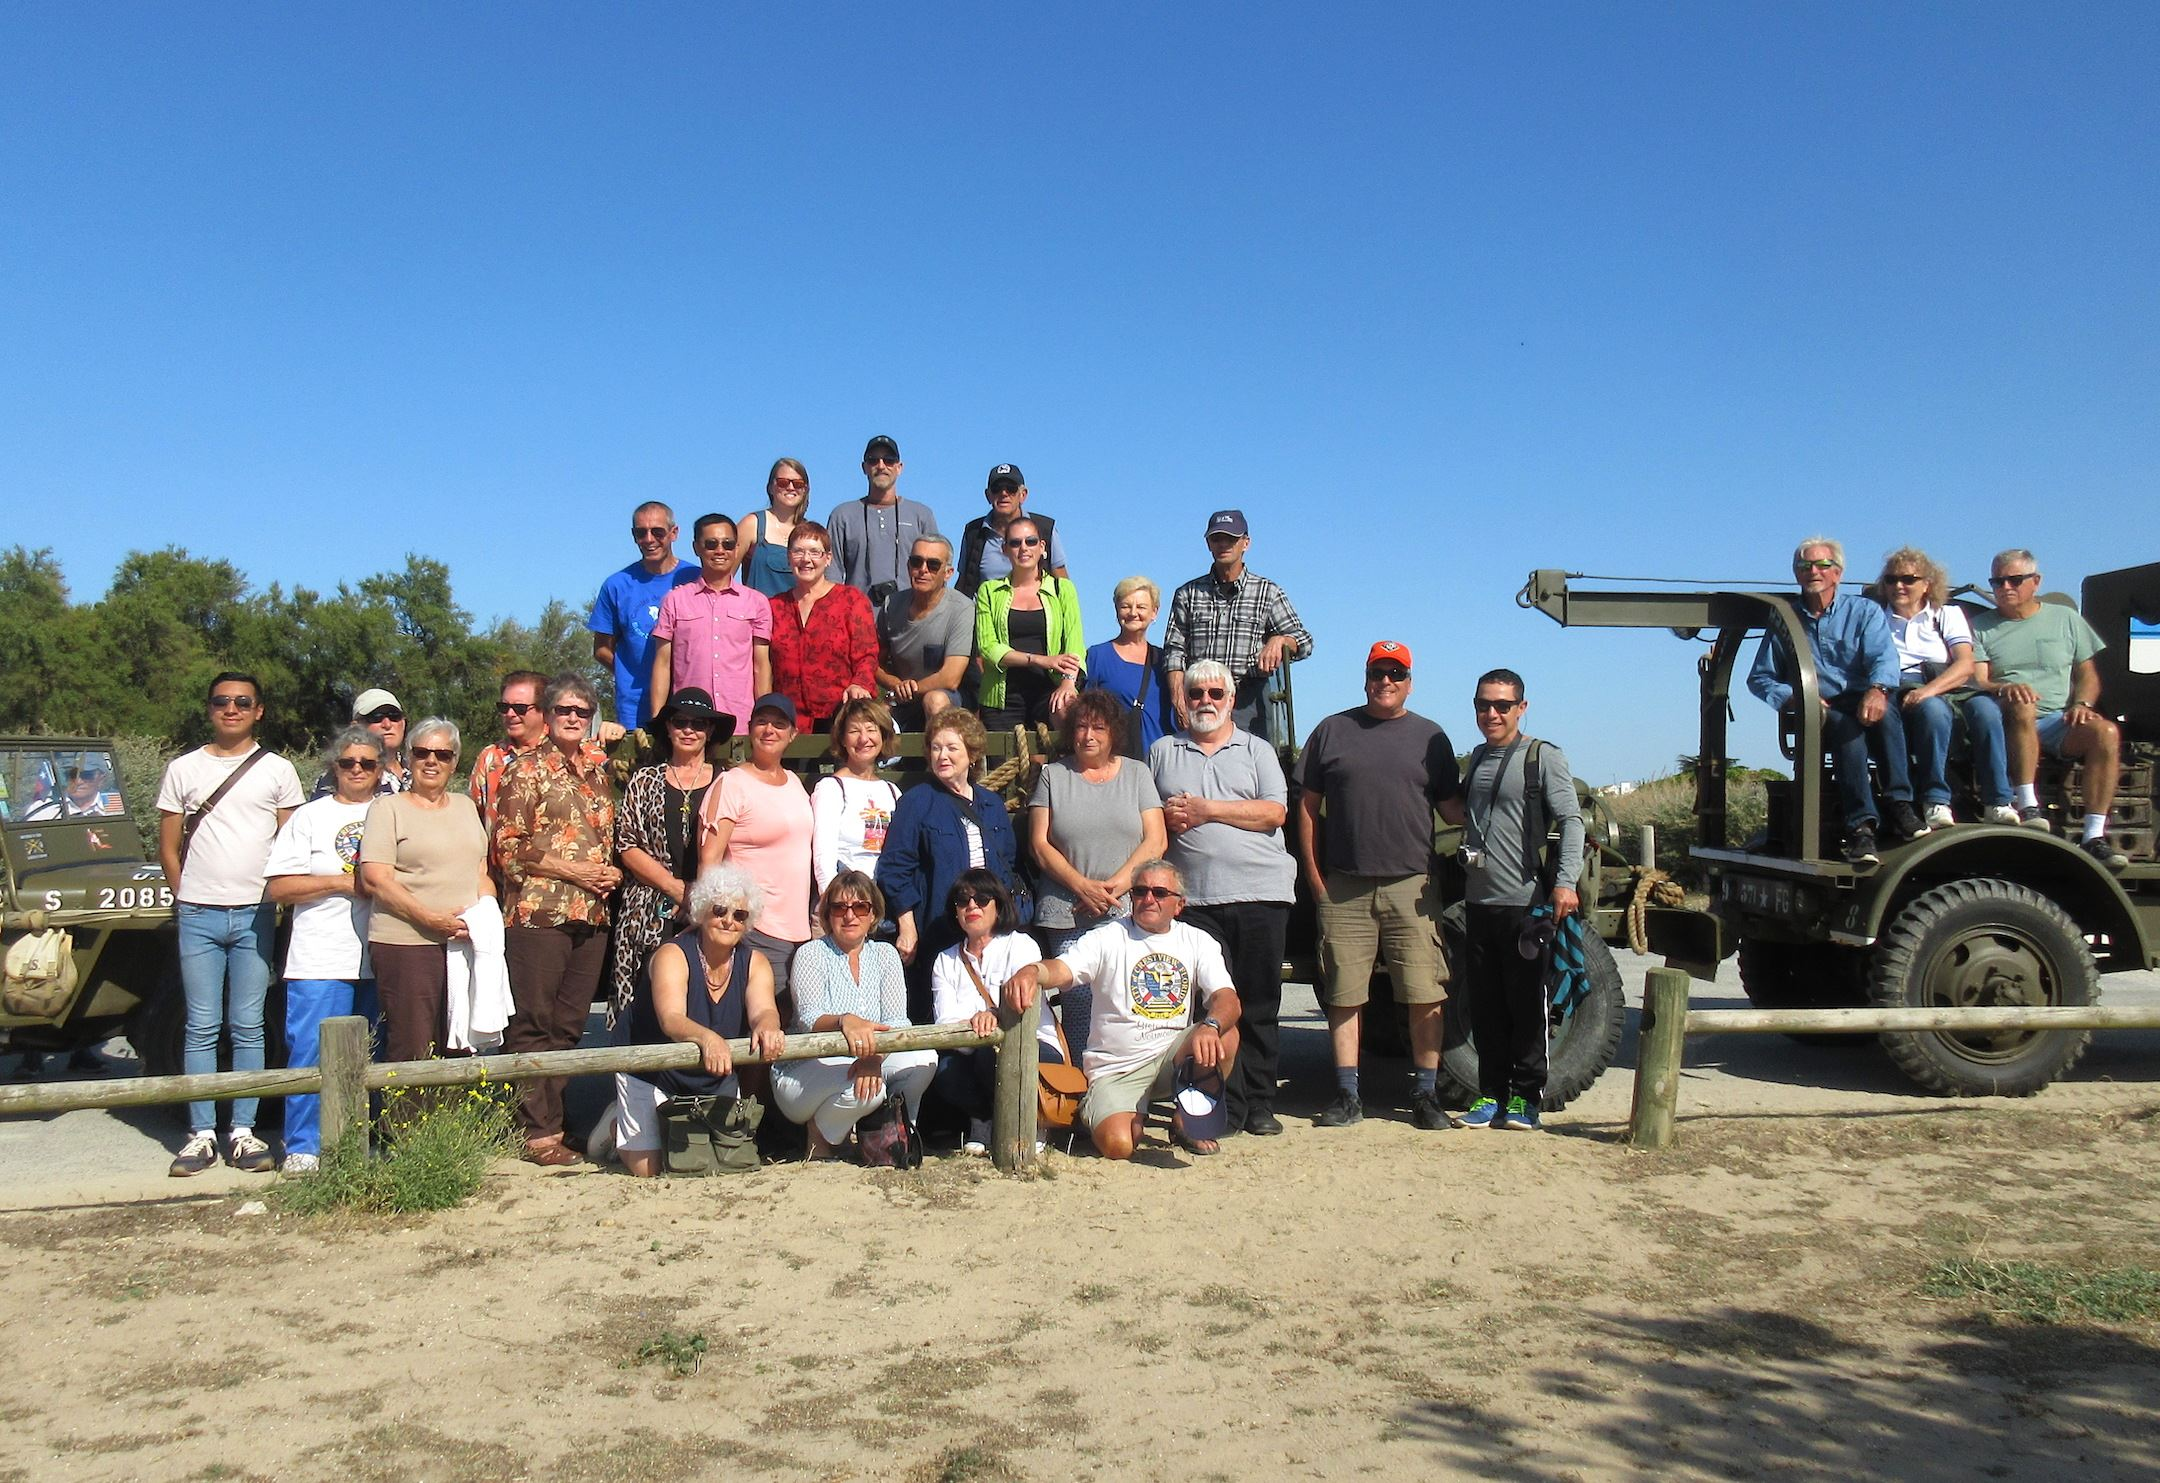 Members of the Crestview Area Sister City Program delegation to Noirmoutier pose atop World War II v